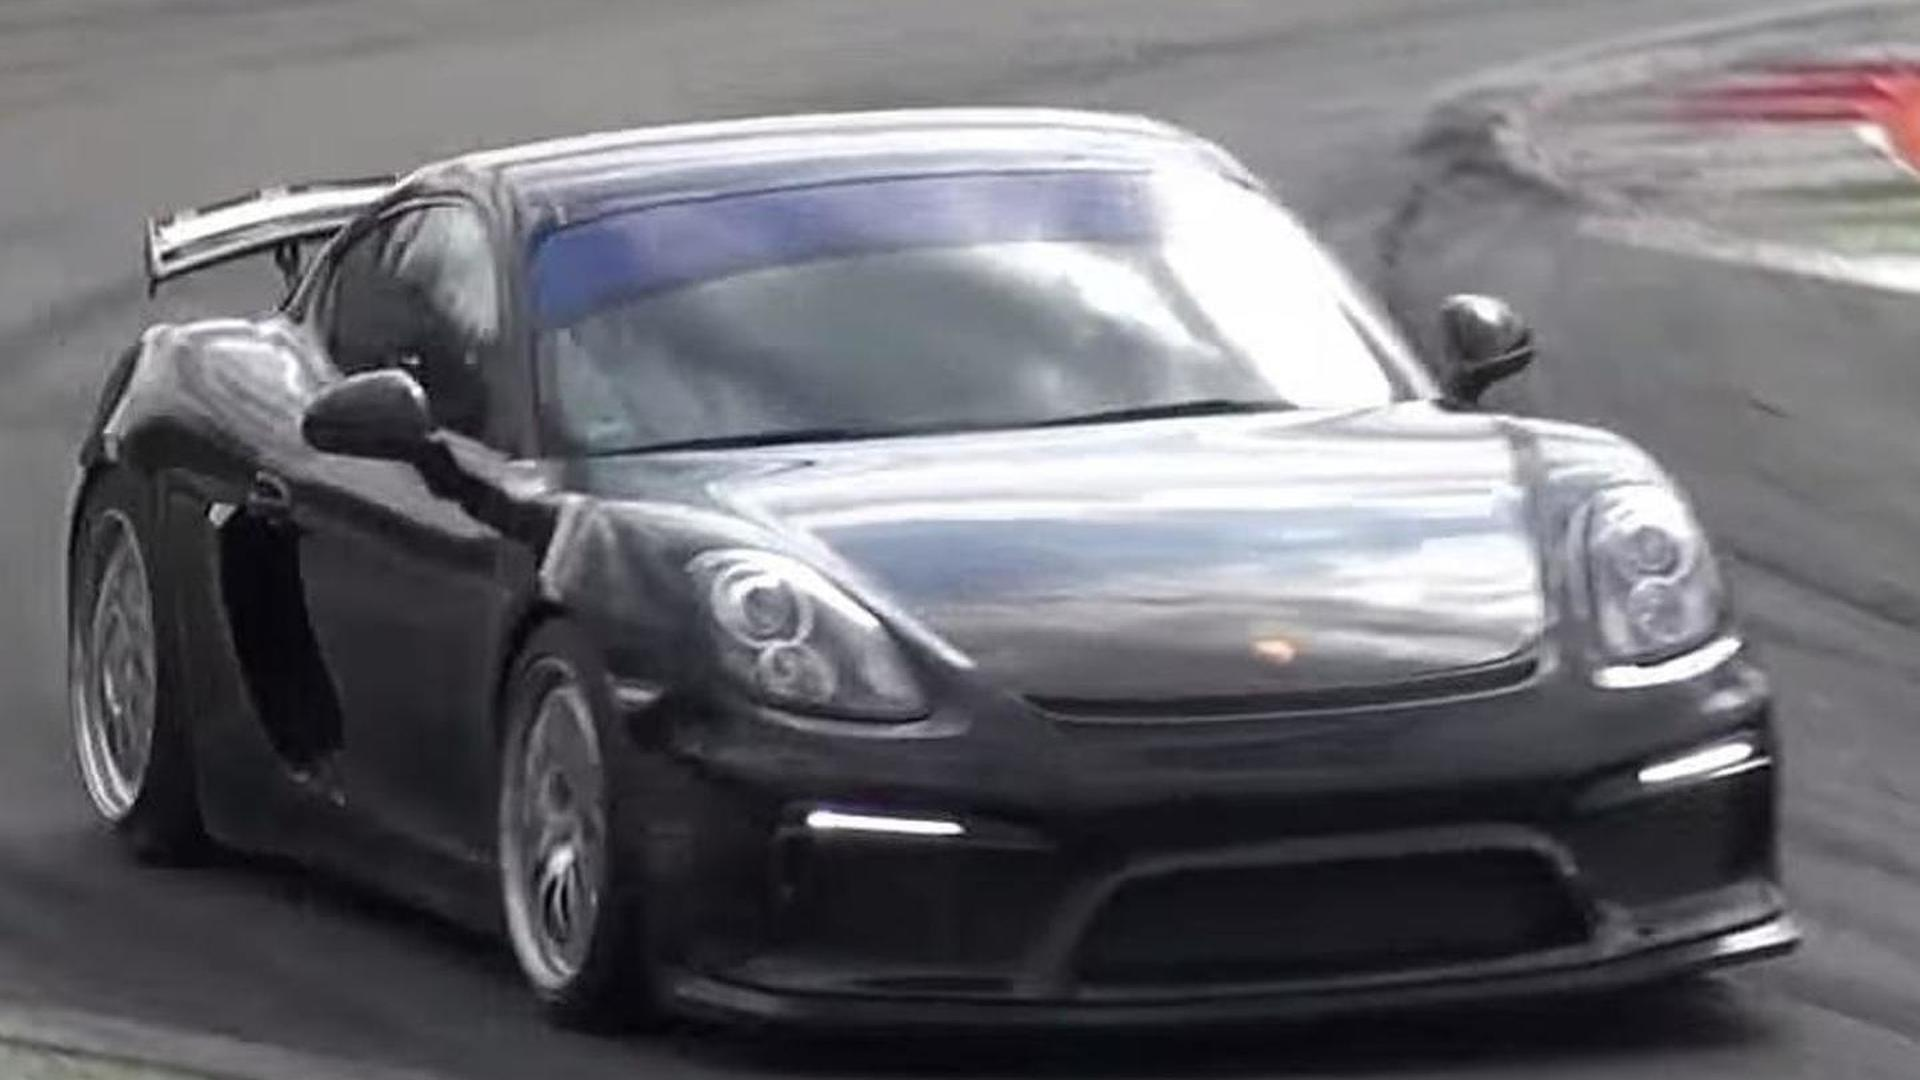 Porsche Cayman GT4 Clubsport will reportedly cost $165,000